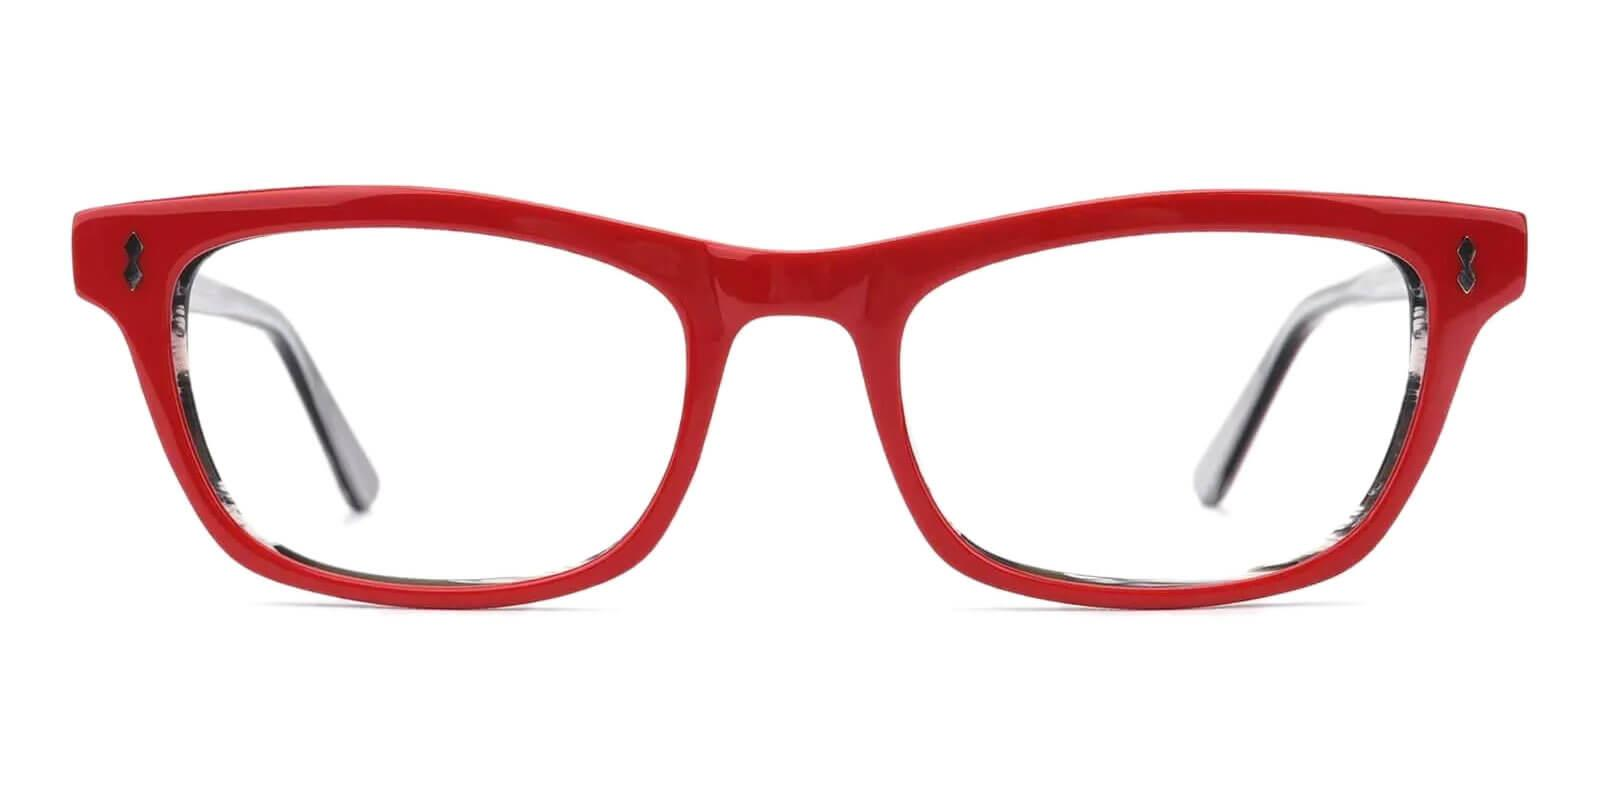 Leaf Red Acetate Eyeglasses , UniversalBridgeFit Frames from ABBE Glasses